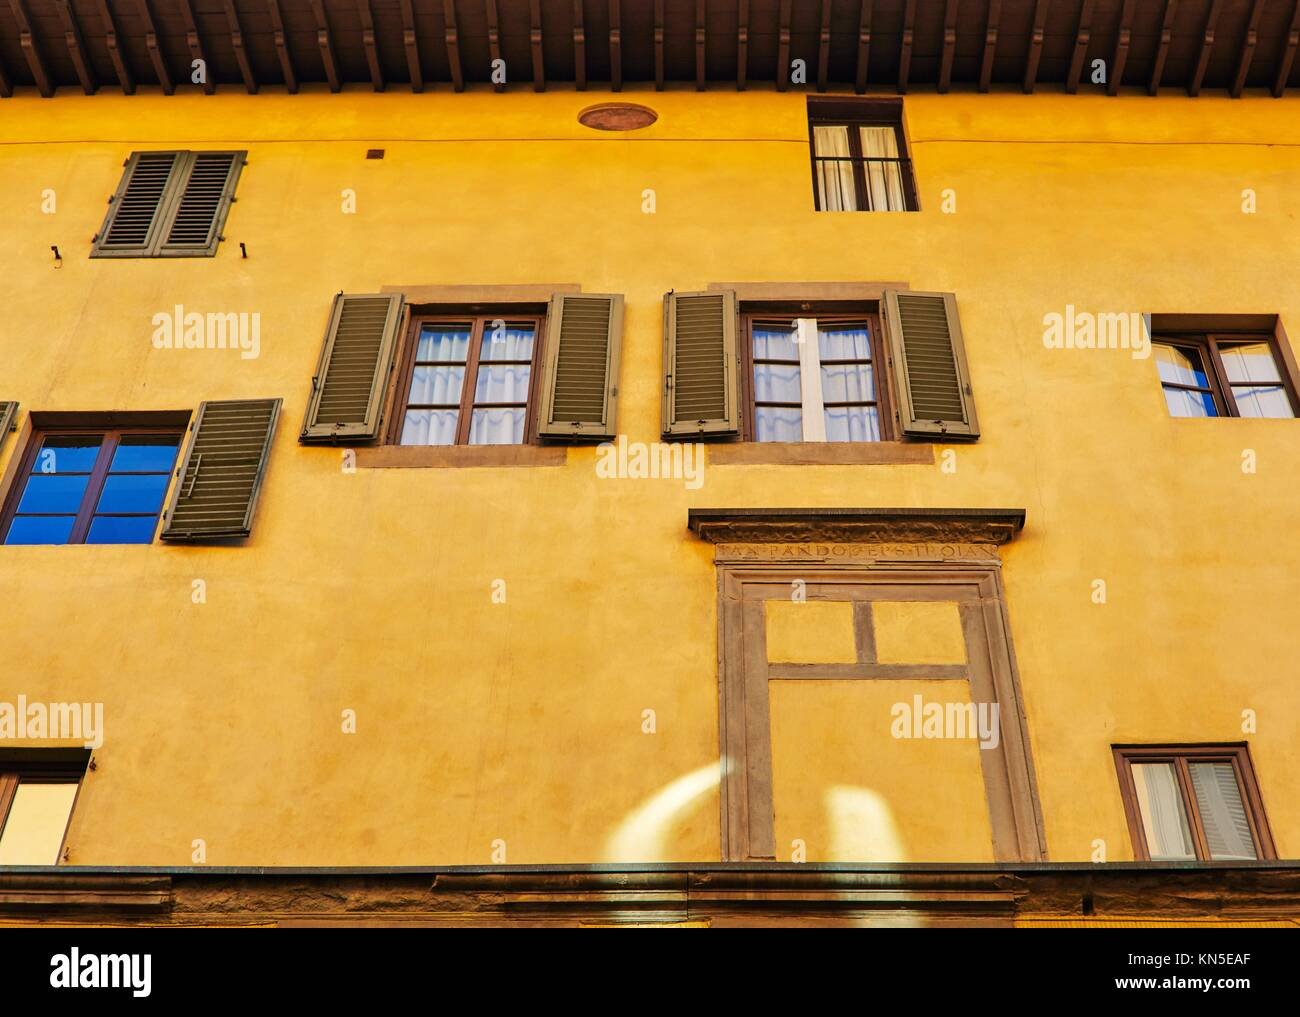 Florentine building facade with different windows. - Stock Image